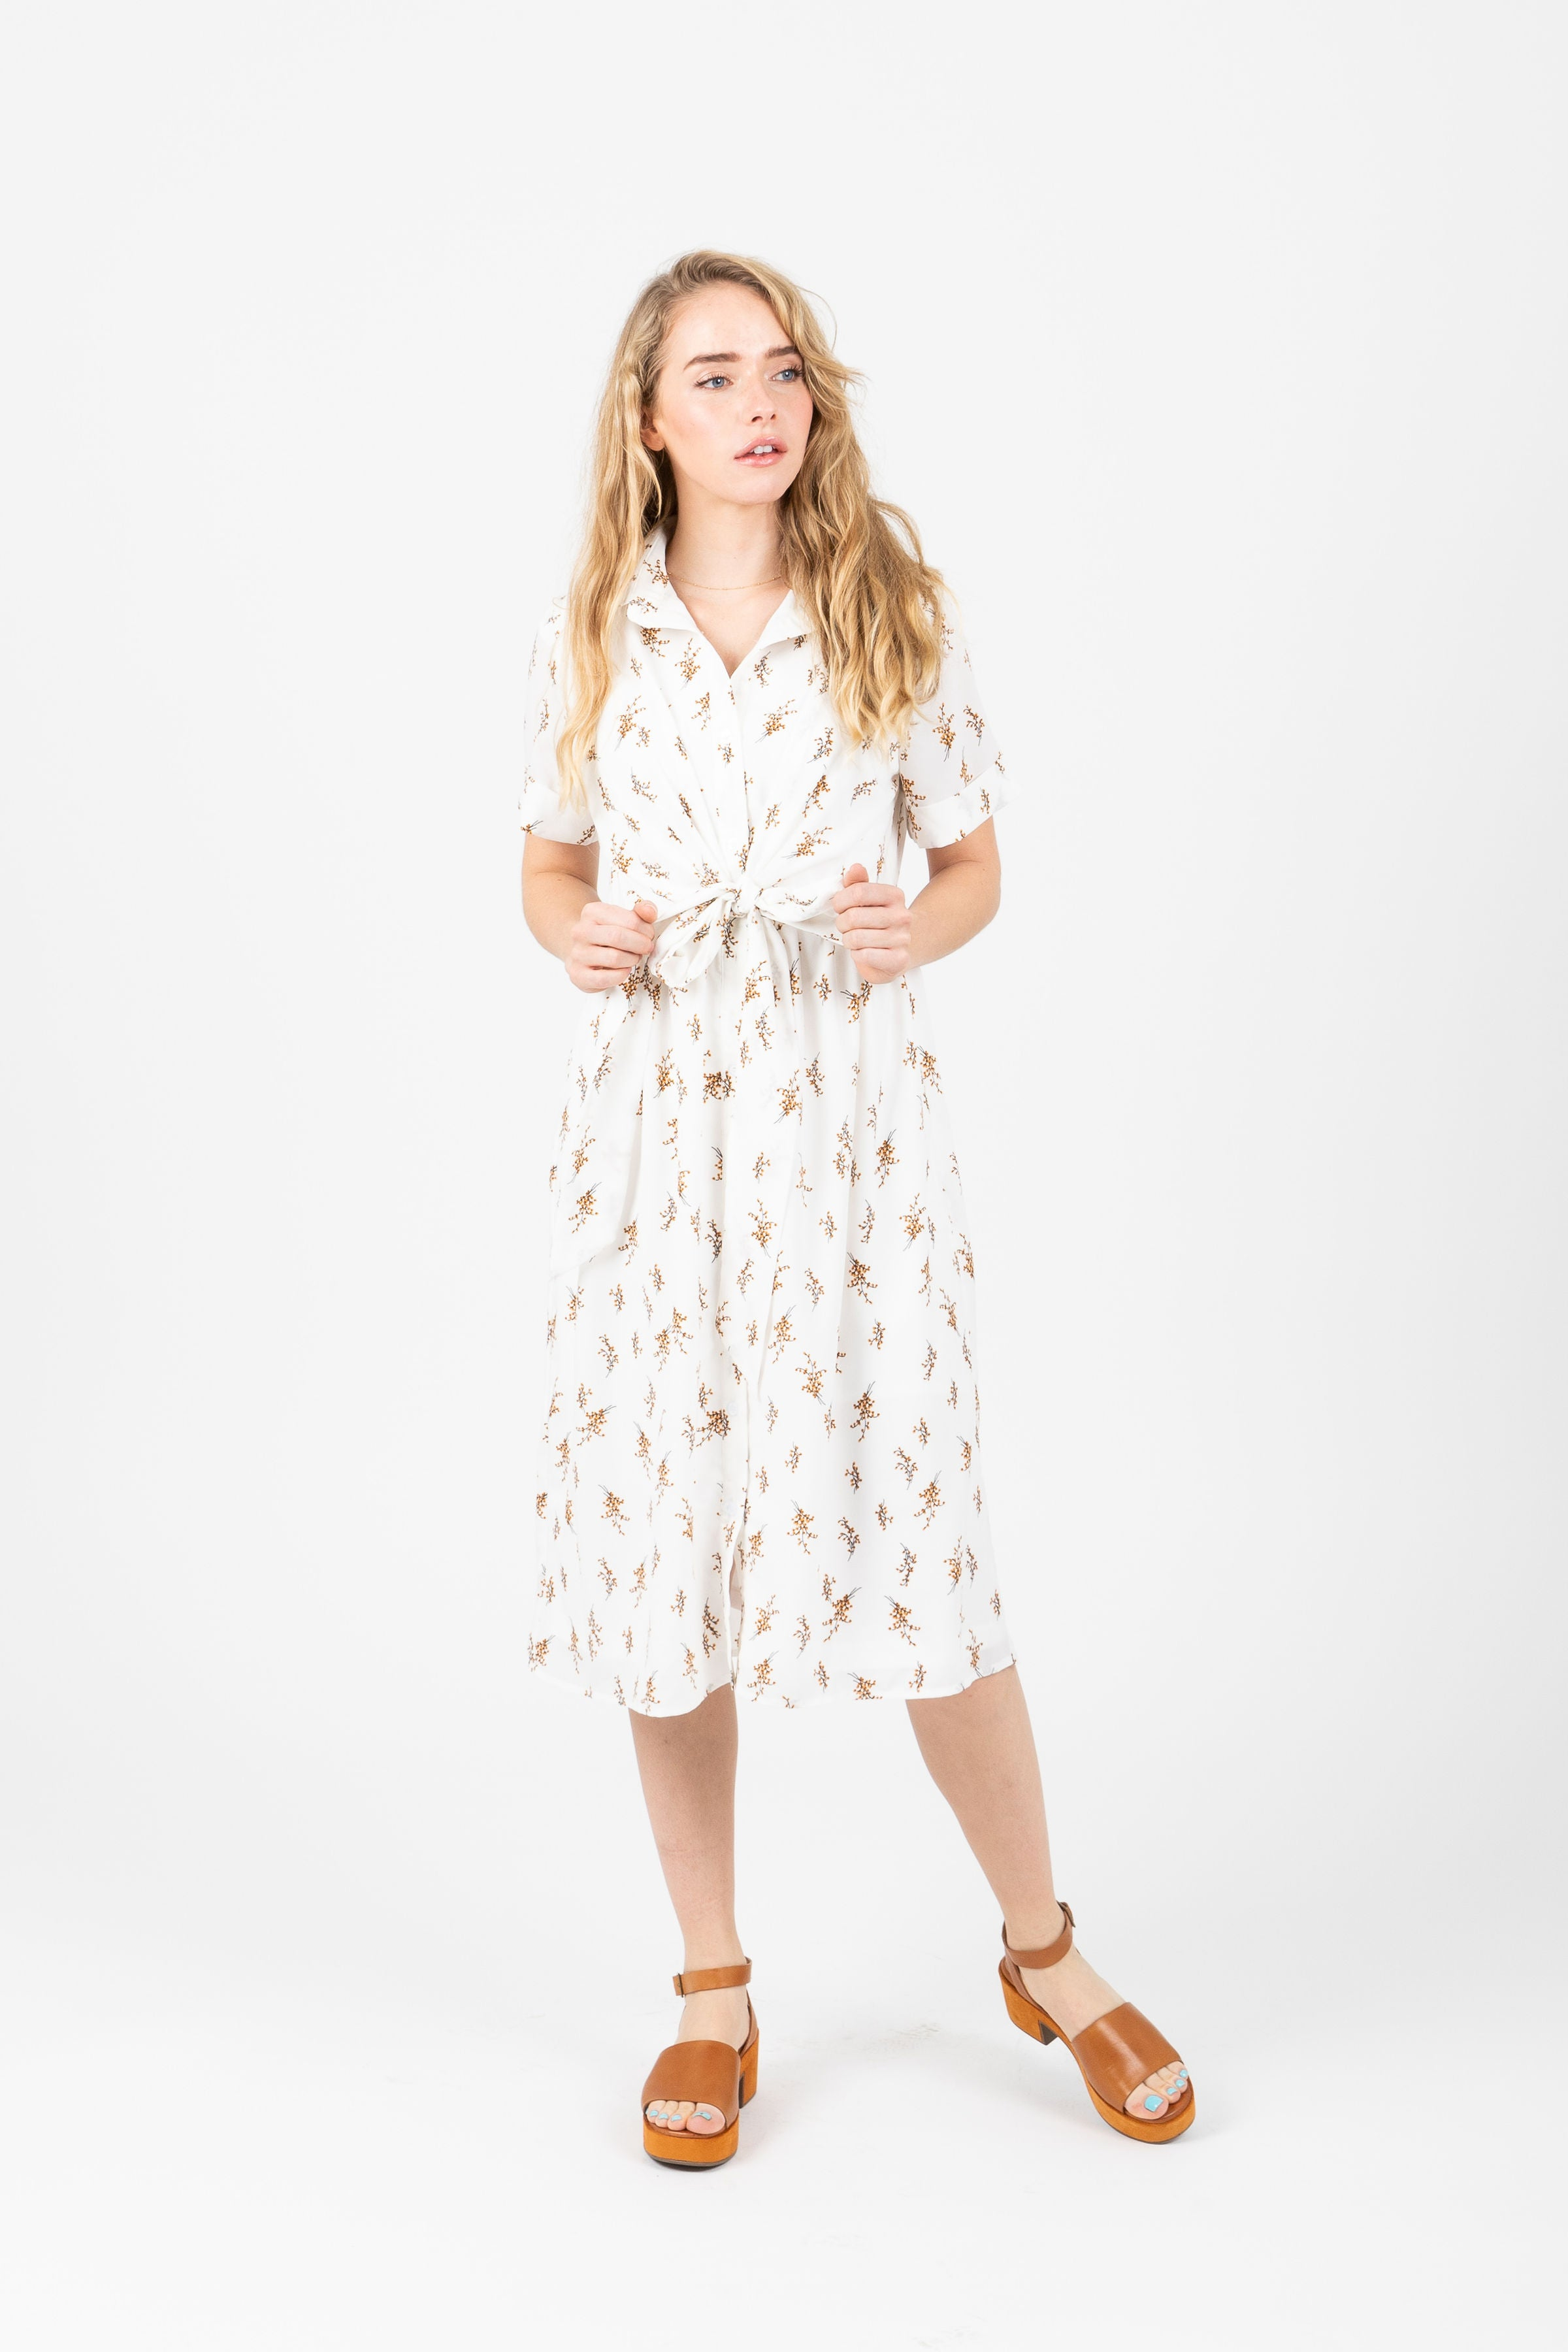 Piper & Scoot: The Sarah Floral Button Down Dress in Ivory